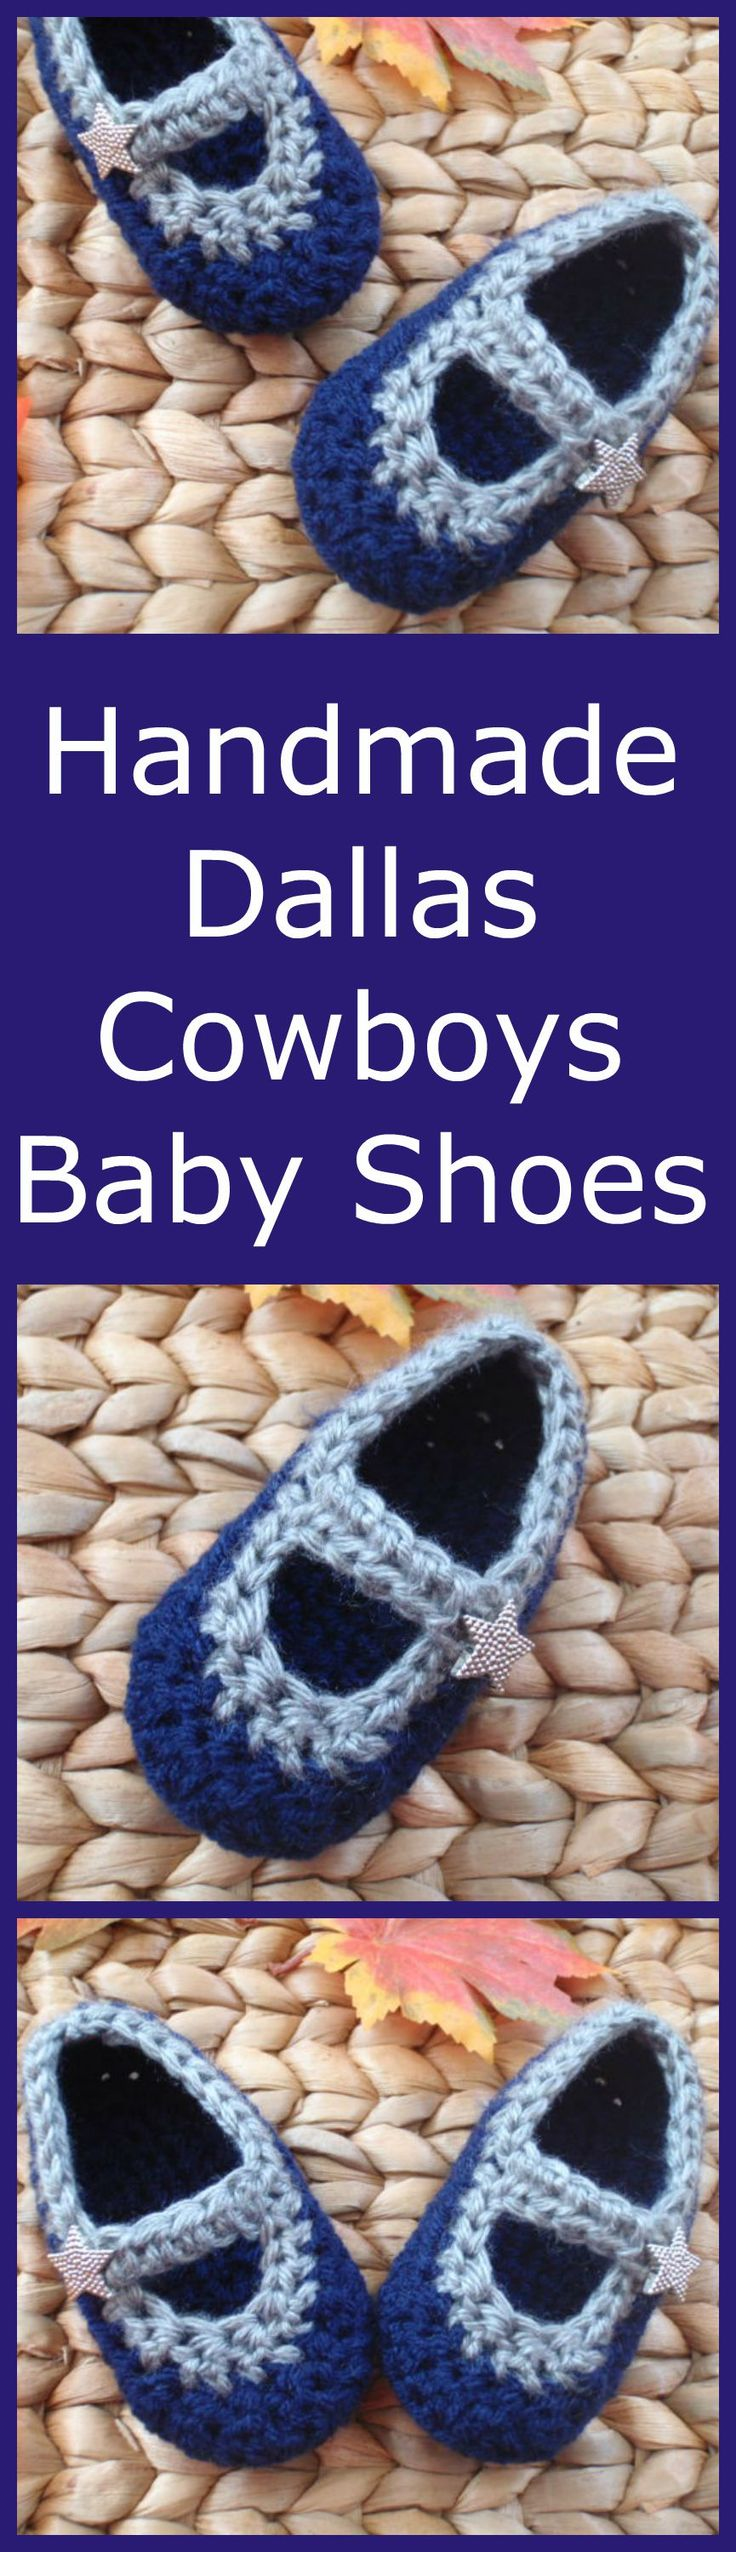 How about them Cowboys?! Dallas Cowboys Crochet Baby Mary Janes are made for your littlest Cowboys fan. They are crocheted with dark blue and gray yarn and have silver star buttons.  They are the perfect accessory for the NFL football games! Free shipping included with all orders. For more baby and toddler accessories, please stop by my Etsy shop at www.etsy.com/sweetheartsandsoles  Please REPIN if you like these!